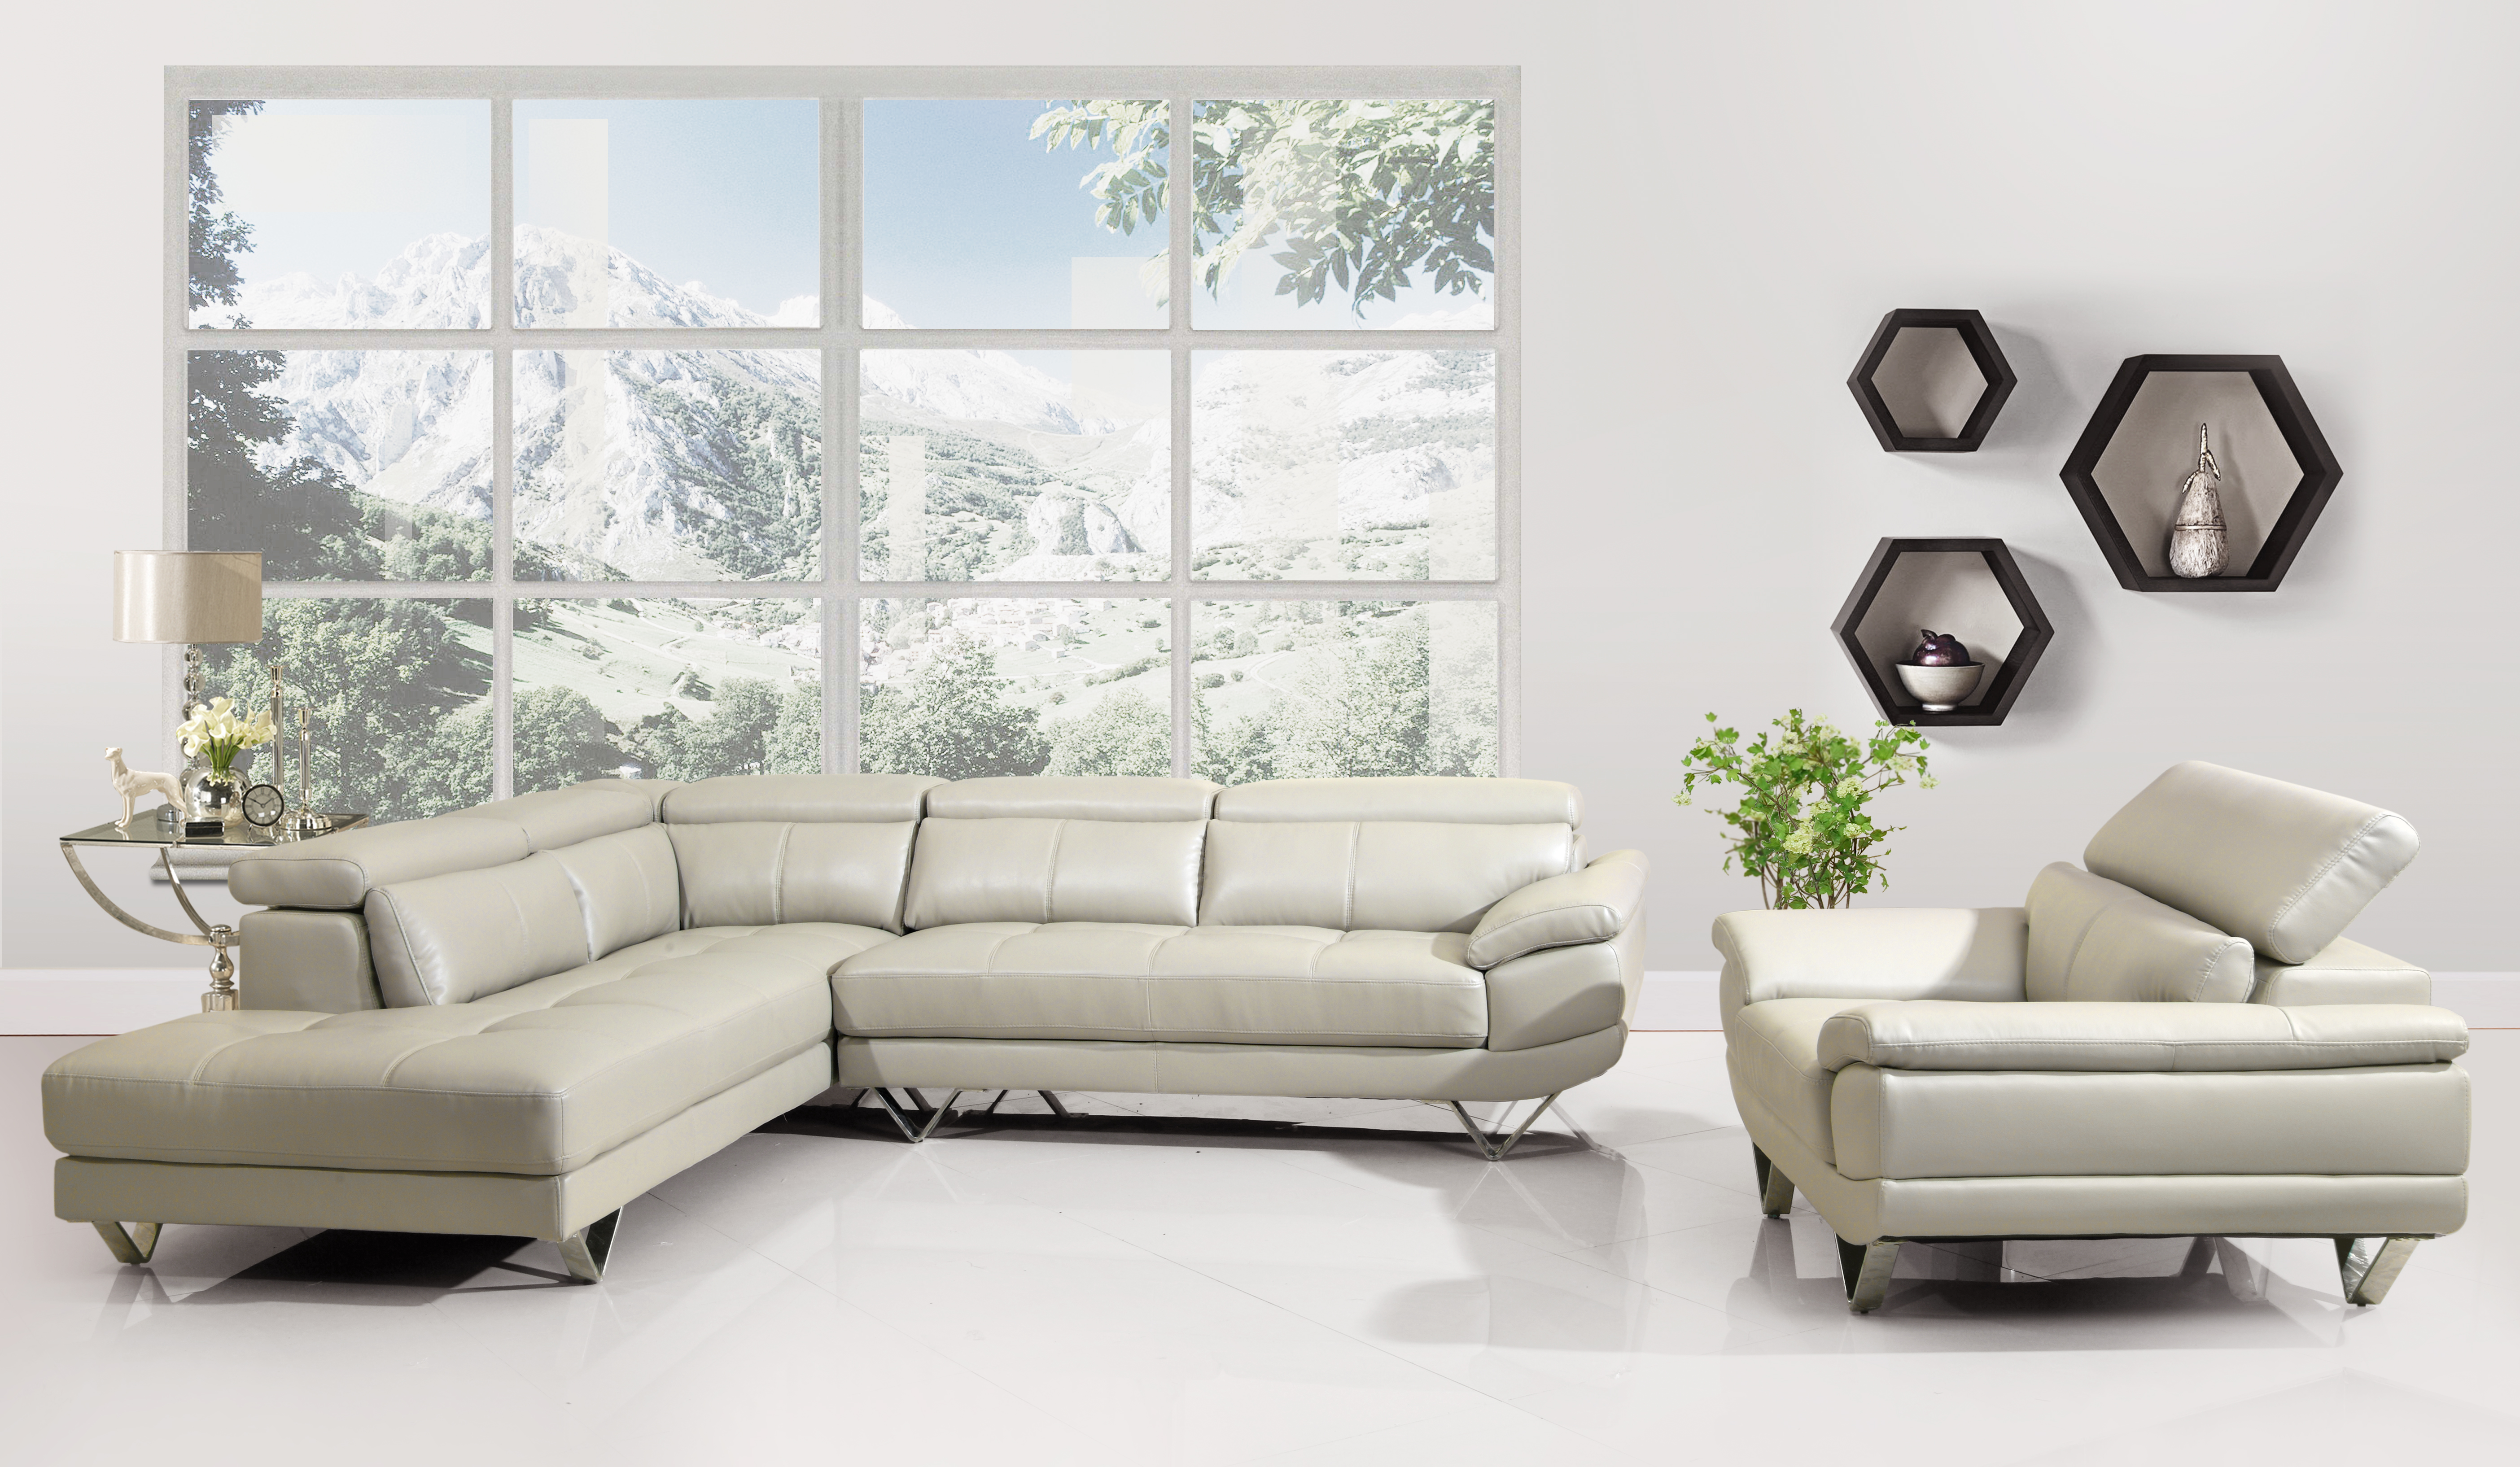 Stacy Cloud Bonded Leather Sectional Las Vegas Furniture Store Modern Home Furniture